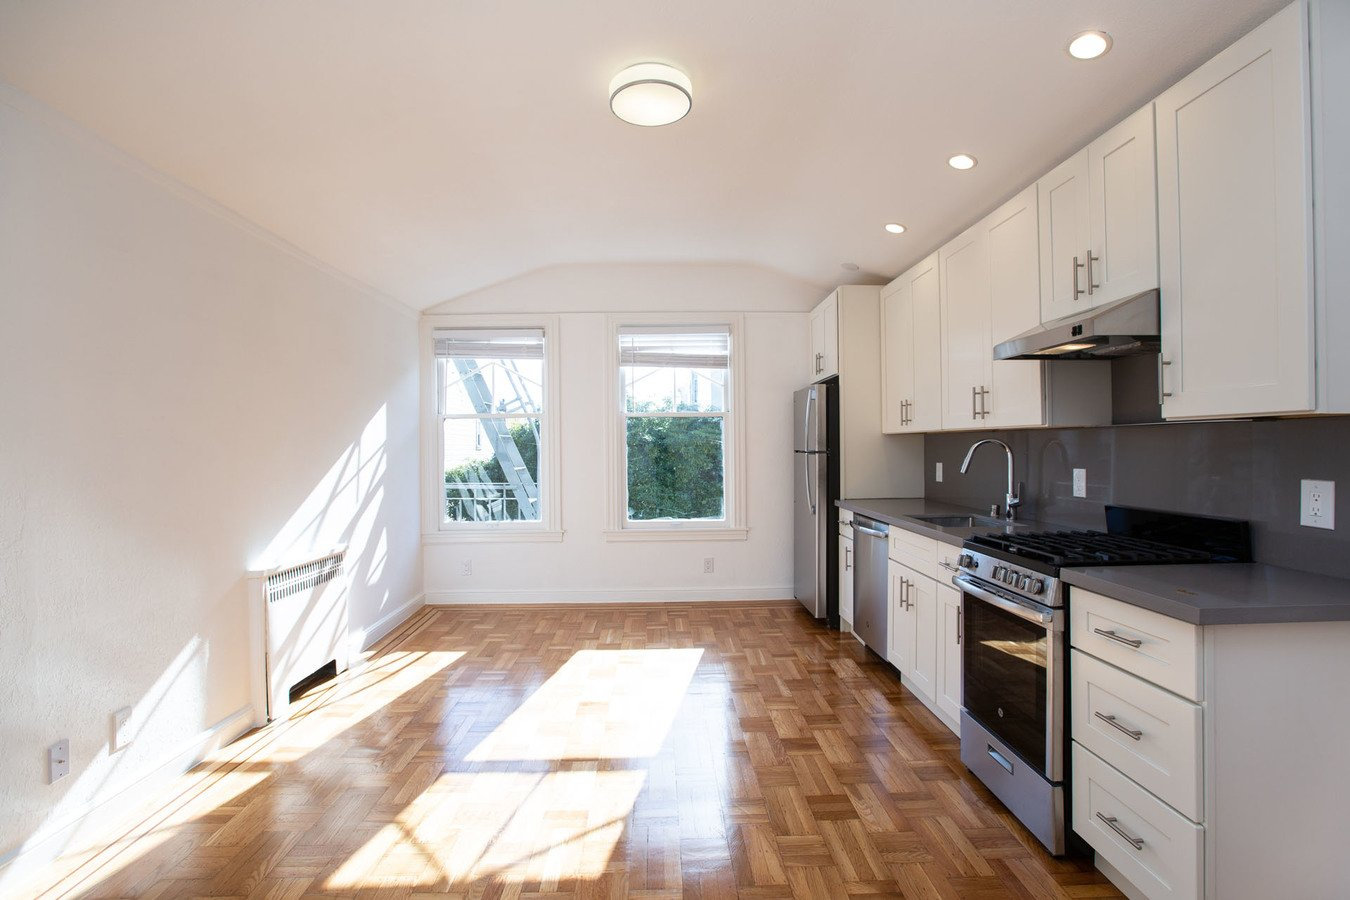 1 Bedroom 1 Bathroom Apartment for rent at 915 Pierce Apartments in San Francisco, CA